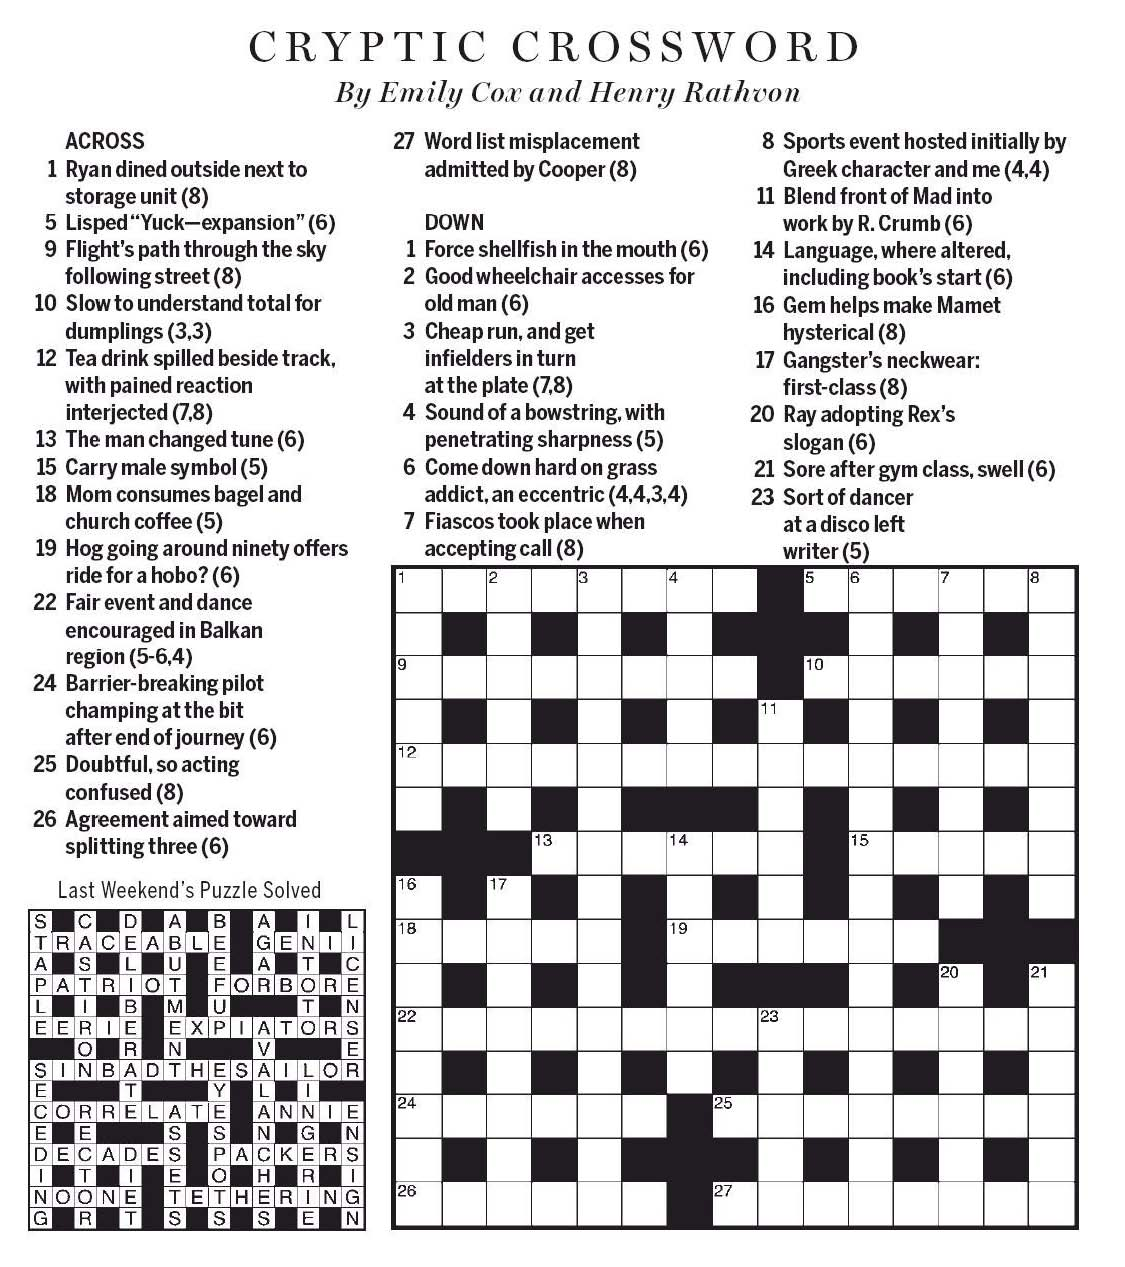 National Post Cryptic Crossword Forum 2019